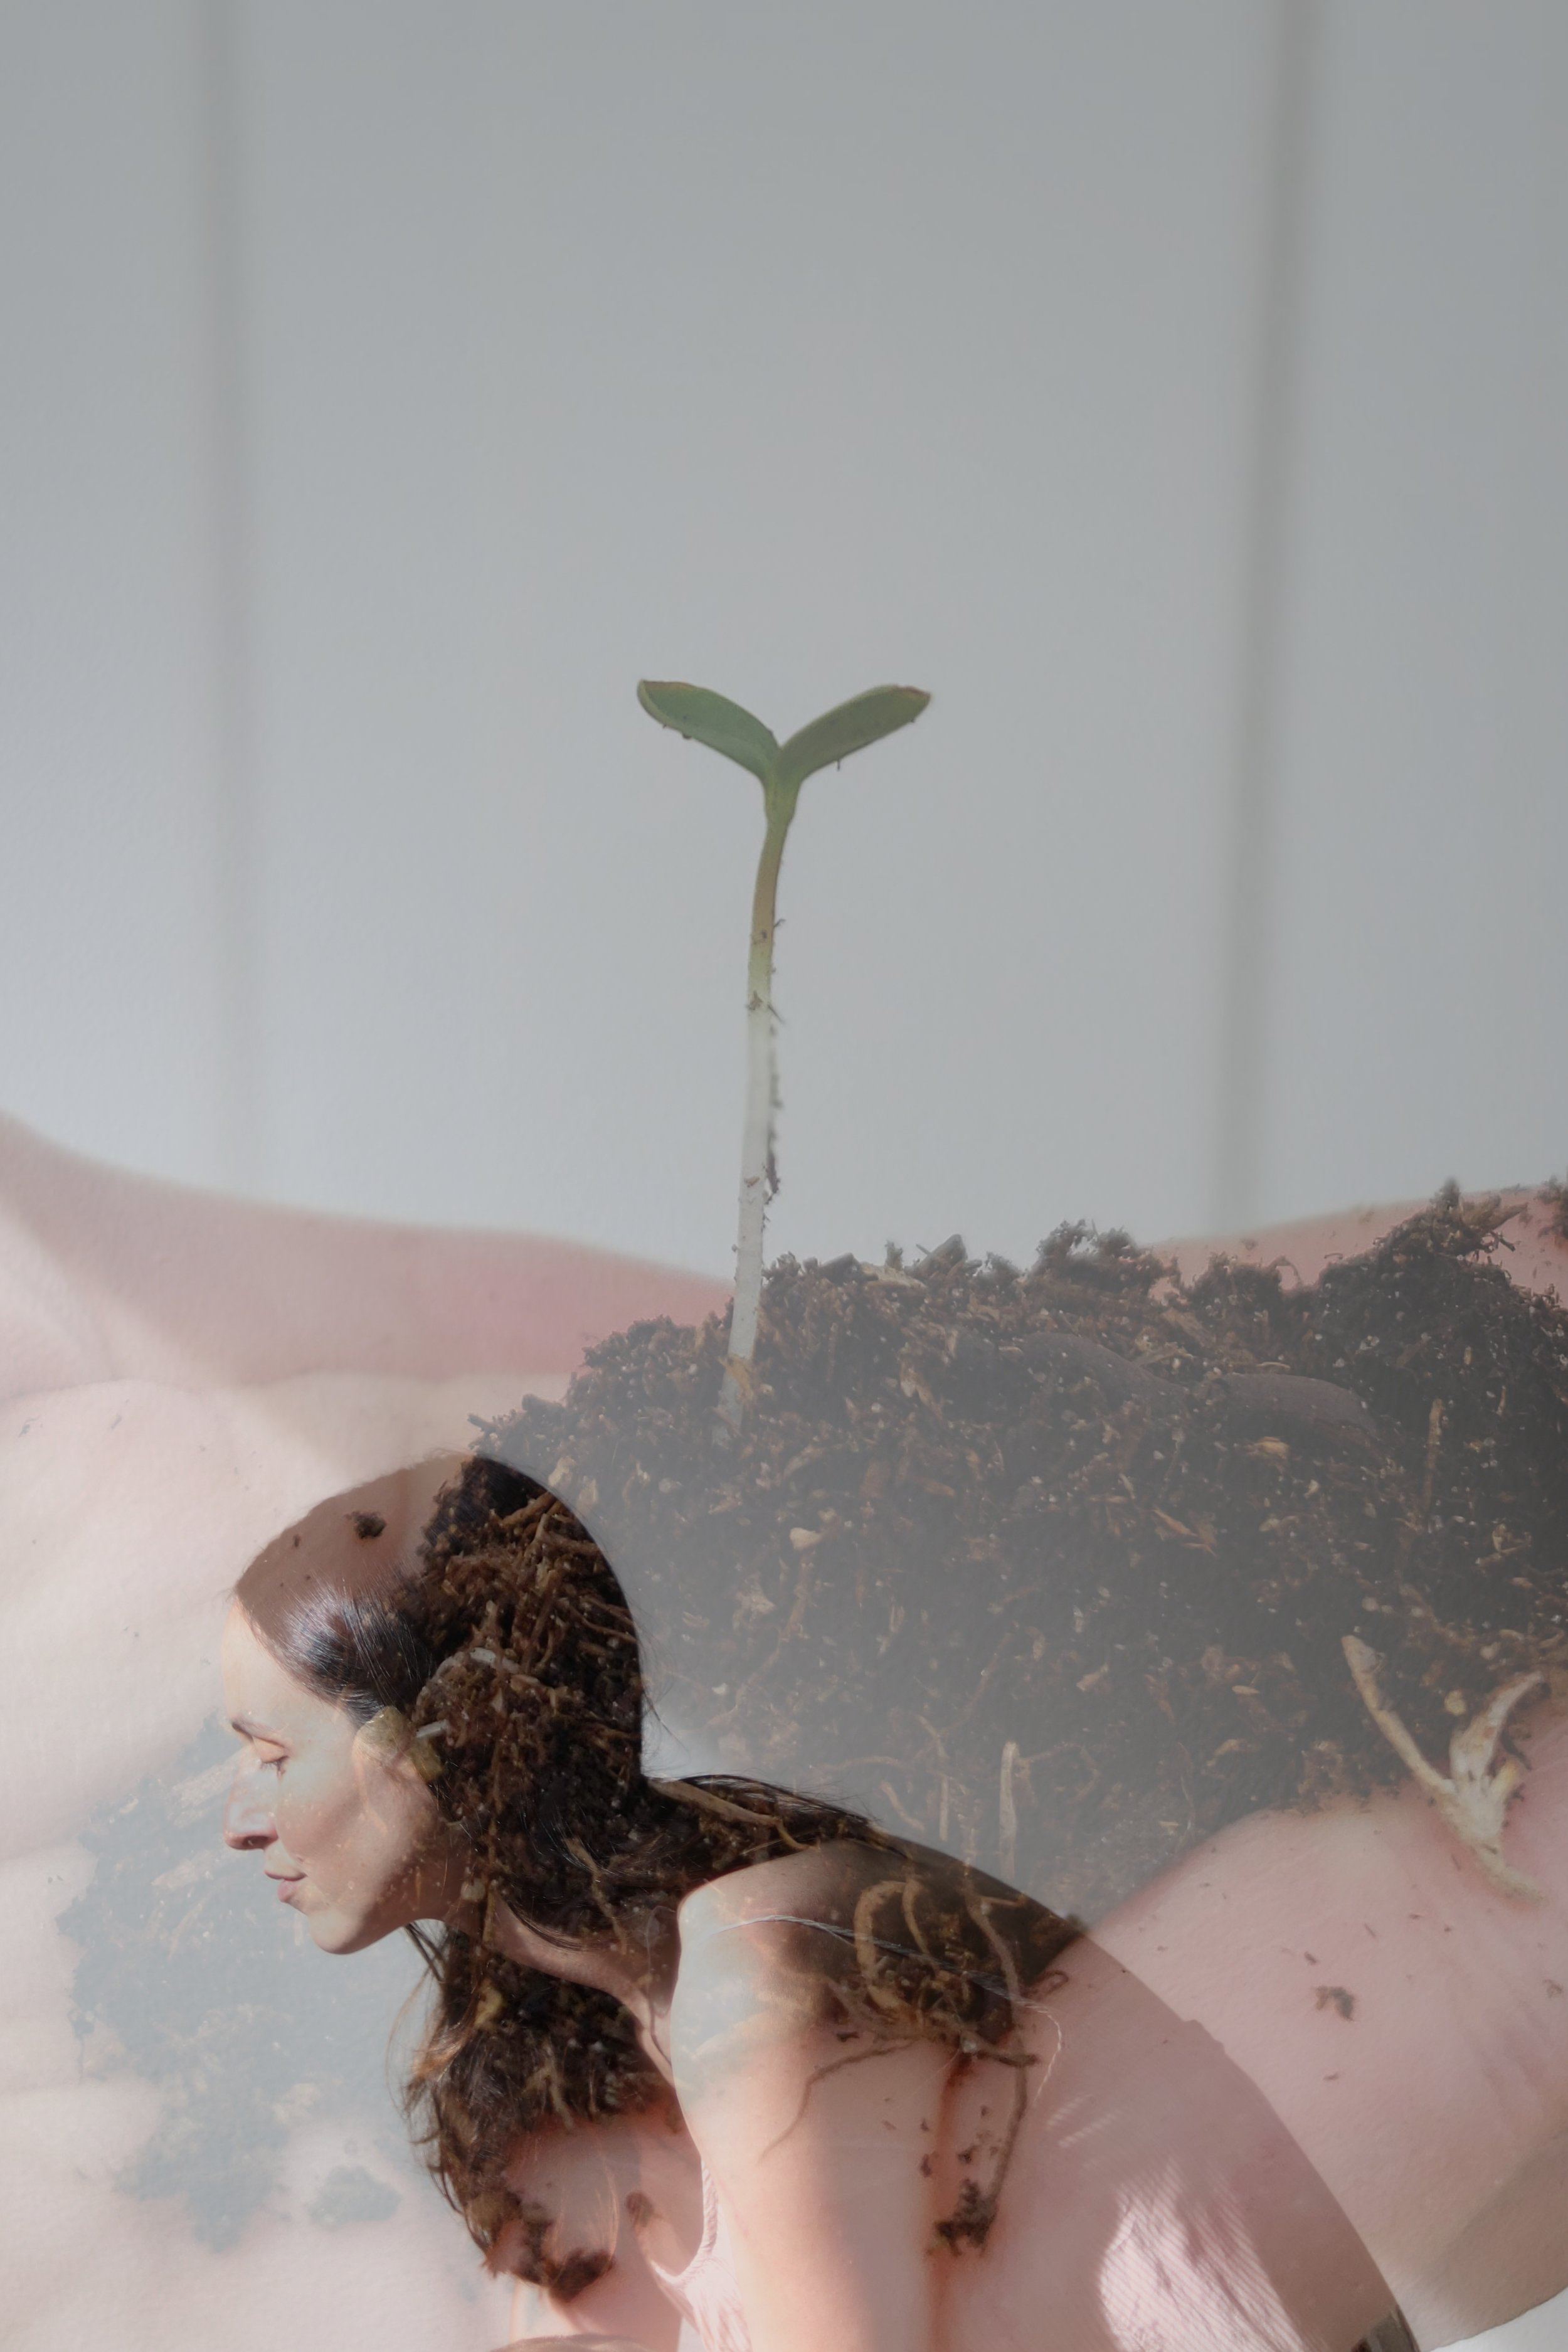 """Image taken by Debora during the course lesson """"Double Exposure Self Portraits."""""""